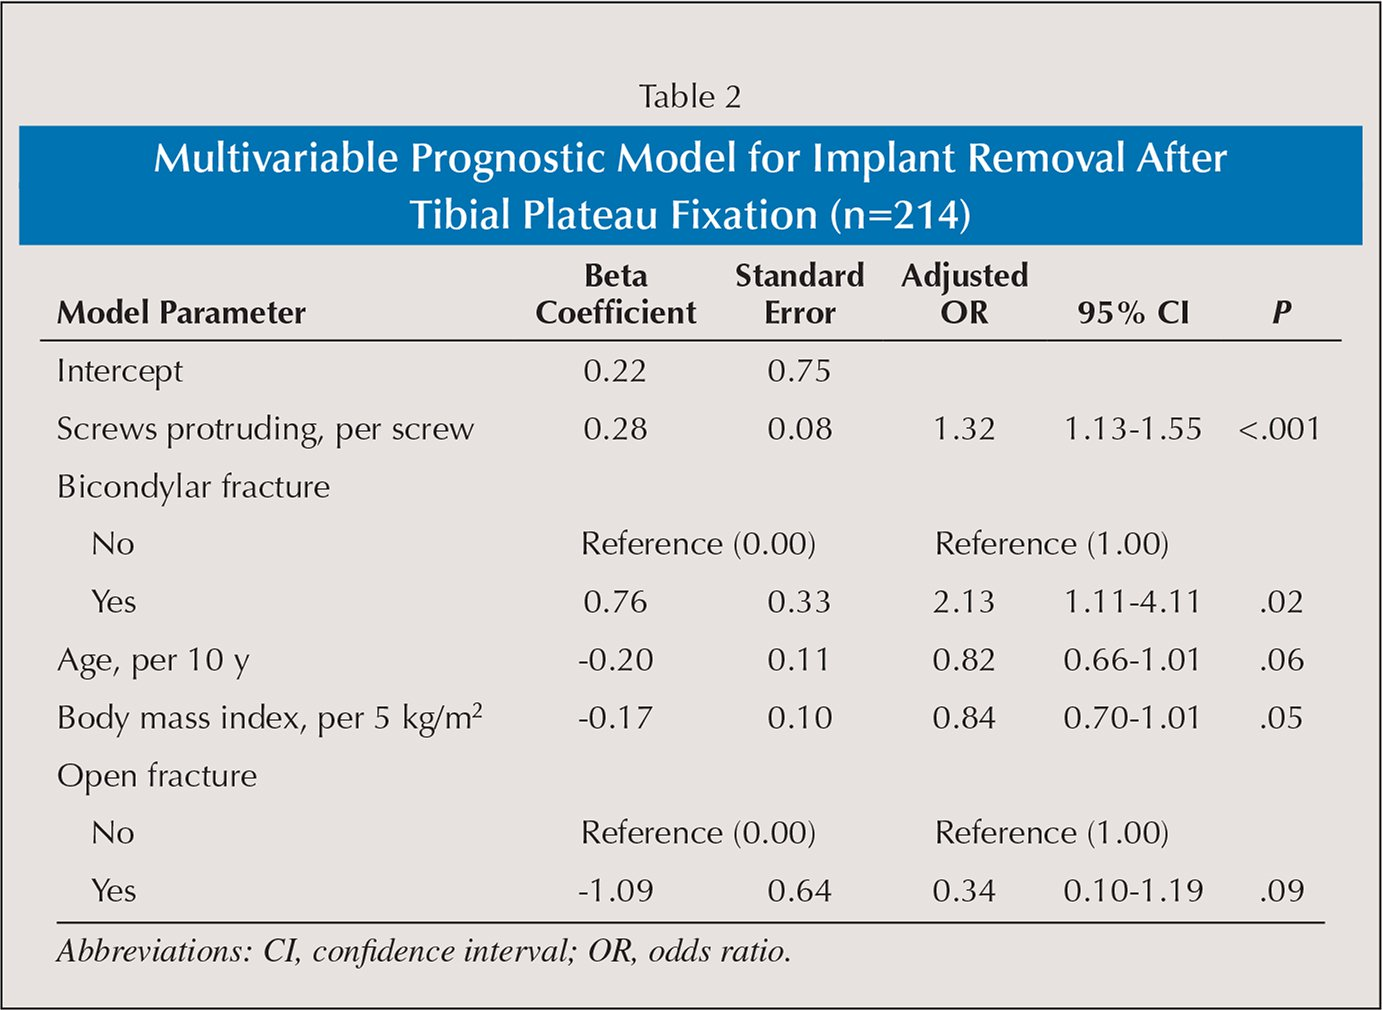 Multivariable Prognostic Model for Implant Removal After Tibial Plateau Fixation (n=214)